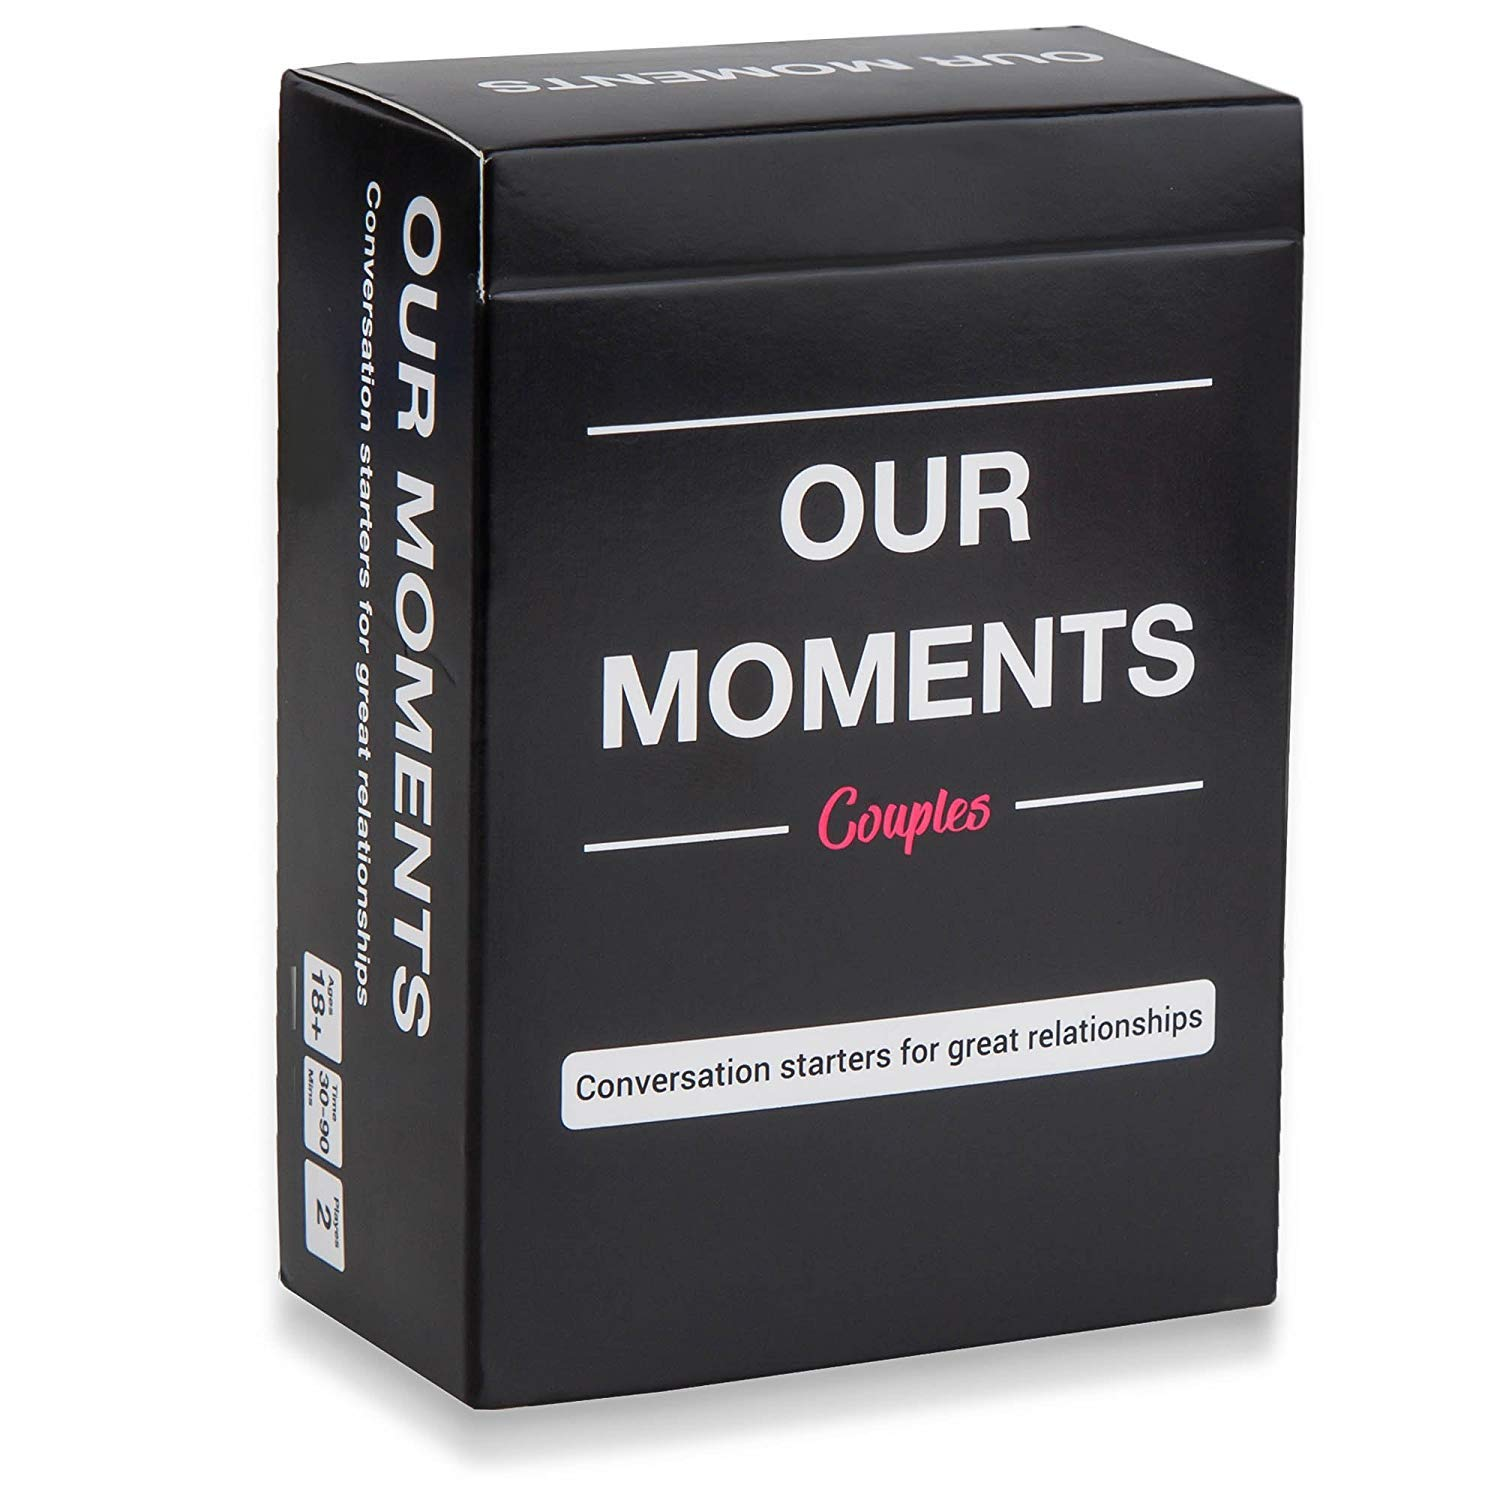 Our Moments: Couples Game (Amazon)